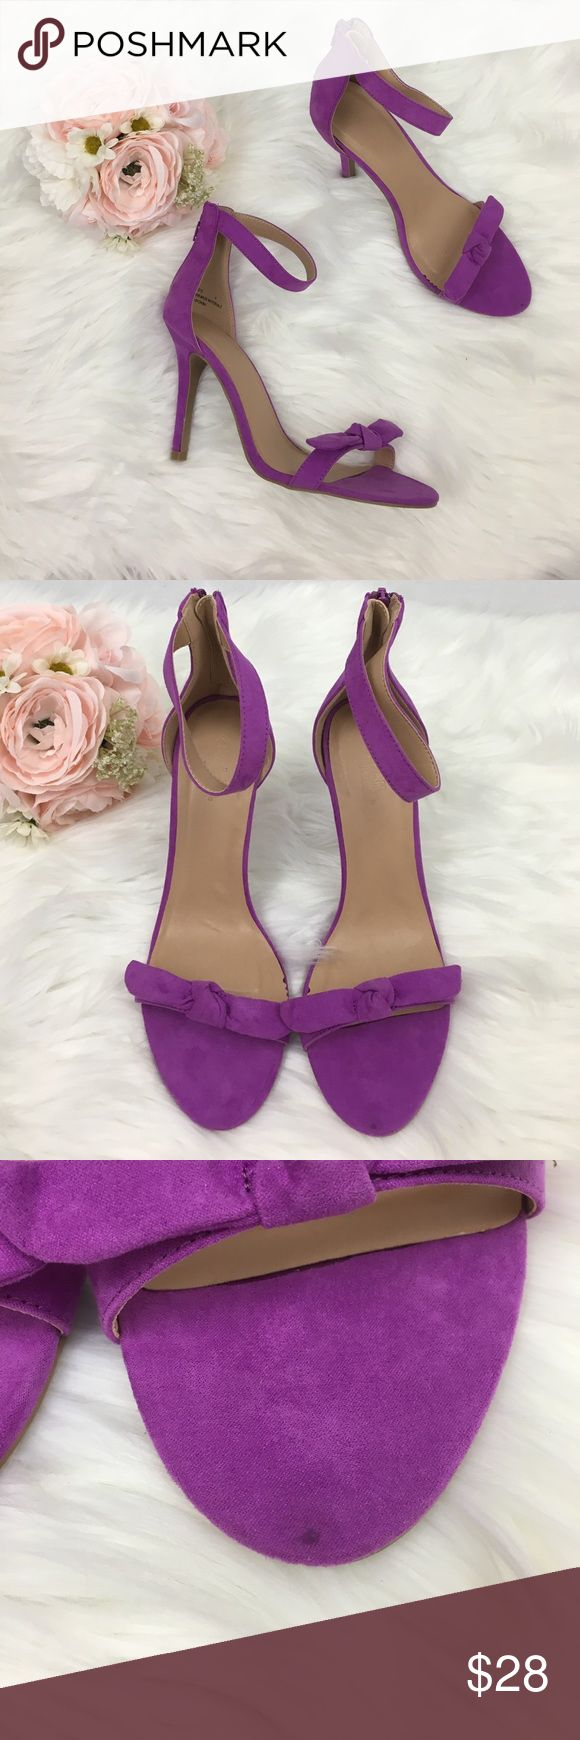 """NWOB Purple Heel BRAND NEW WITHOUT BOX AND NEVER WORN! Has small mark; shown in third photo. Bow style on front and back zipper with strapy ankle style. Heel measures 4"""". No tears or stains. Cannot model due to size. No trades and no holds. Charlotte Russe Shoes Heels"""